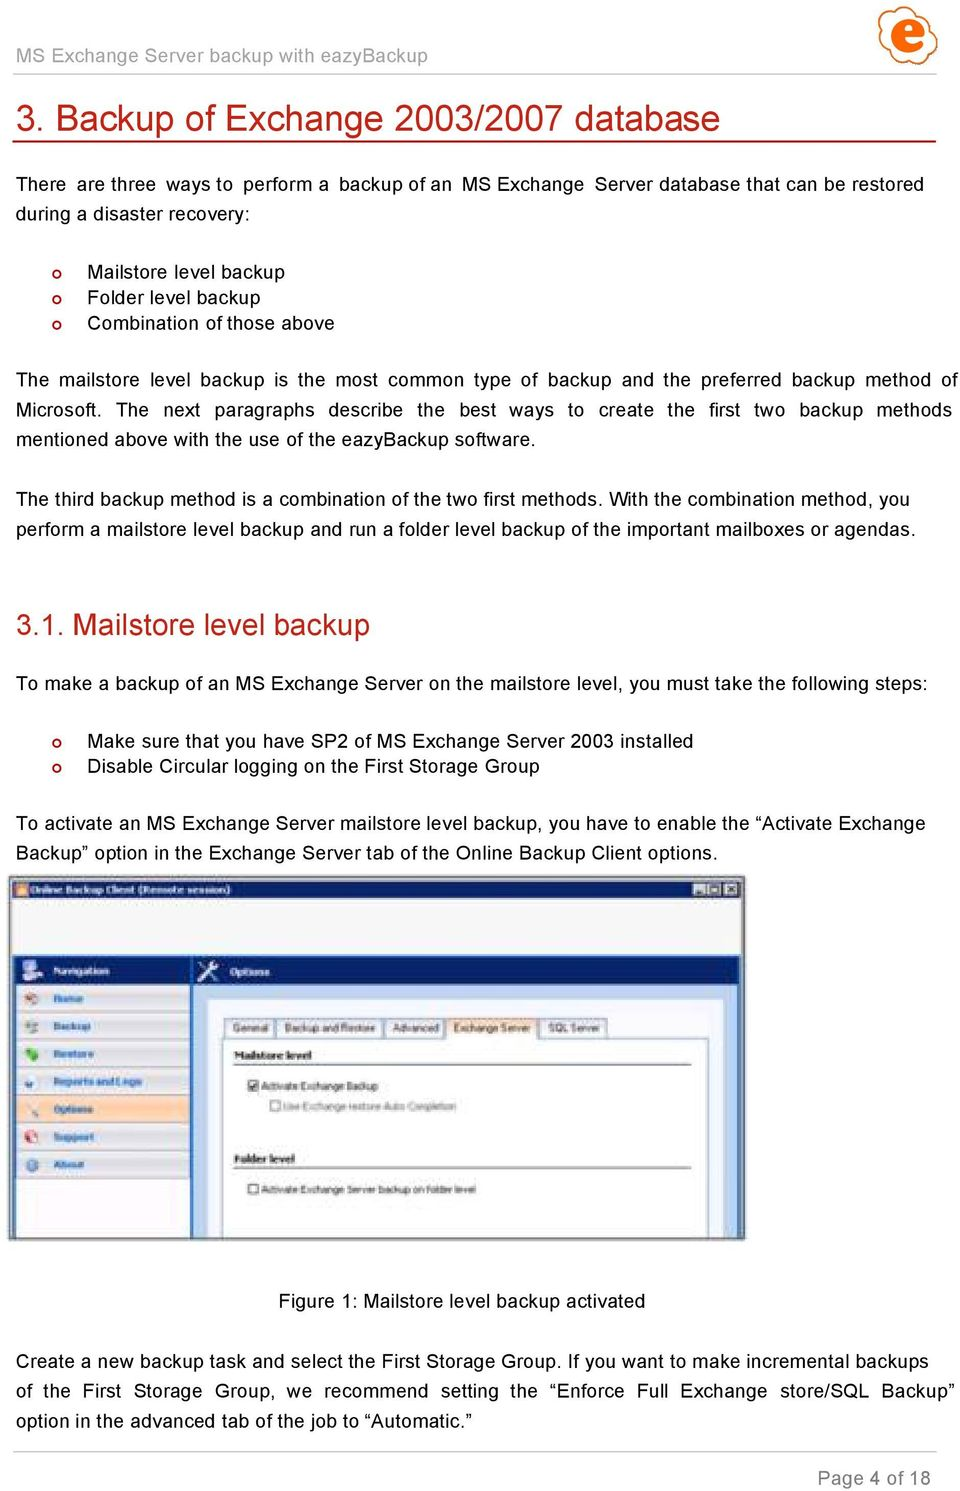 The next paragraphs describe the best ways to create the first two backup methods mentioned above with the use of the eazybackup software.